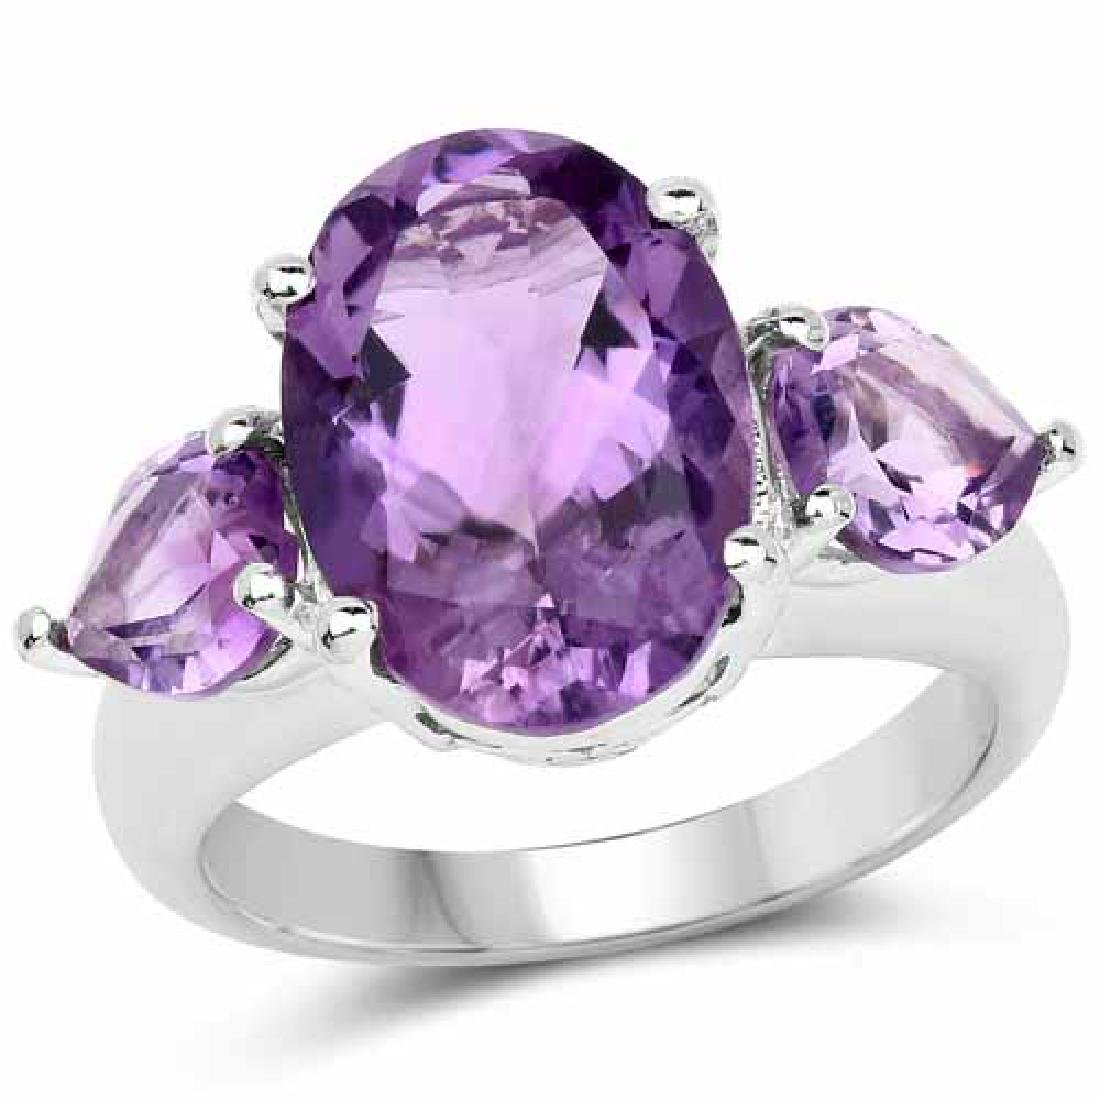 6.30 Carat Genuine Amethyst .925 Sterling Silver Ring